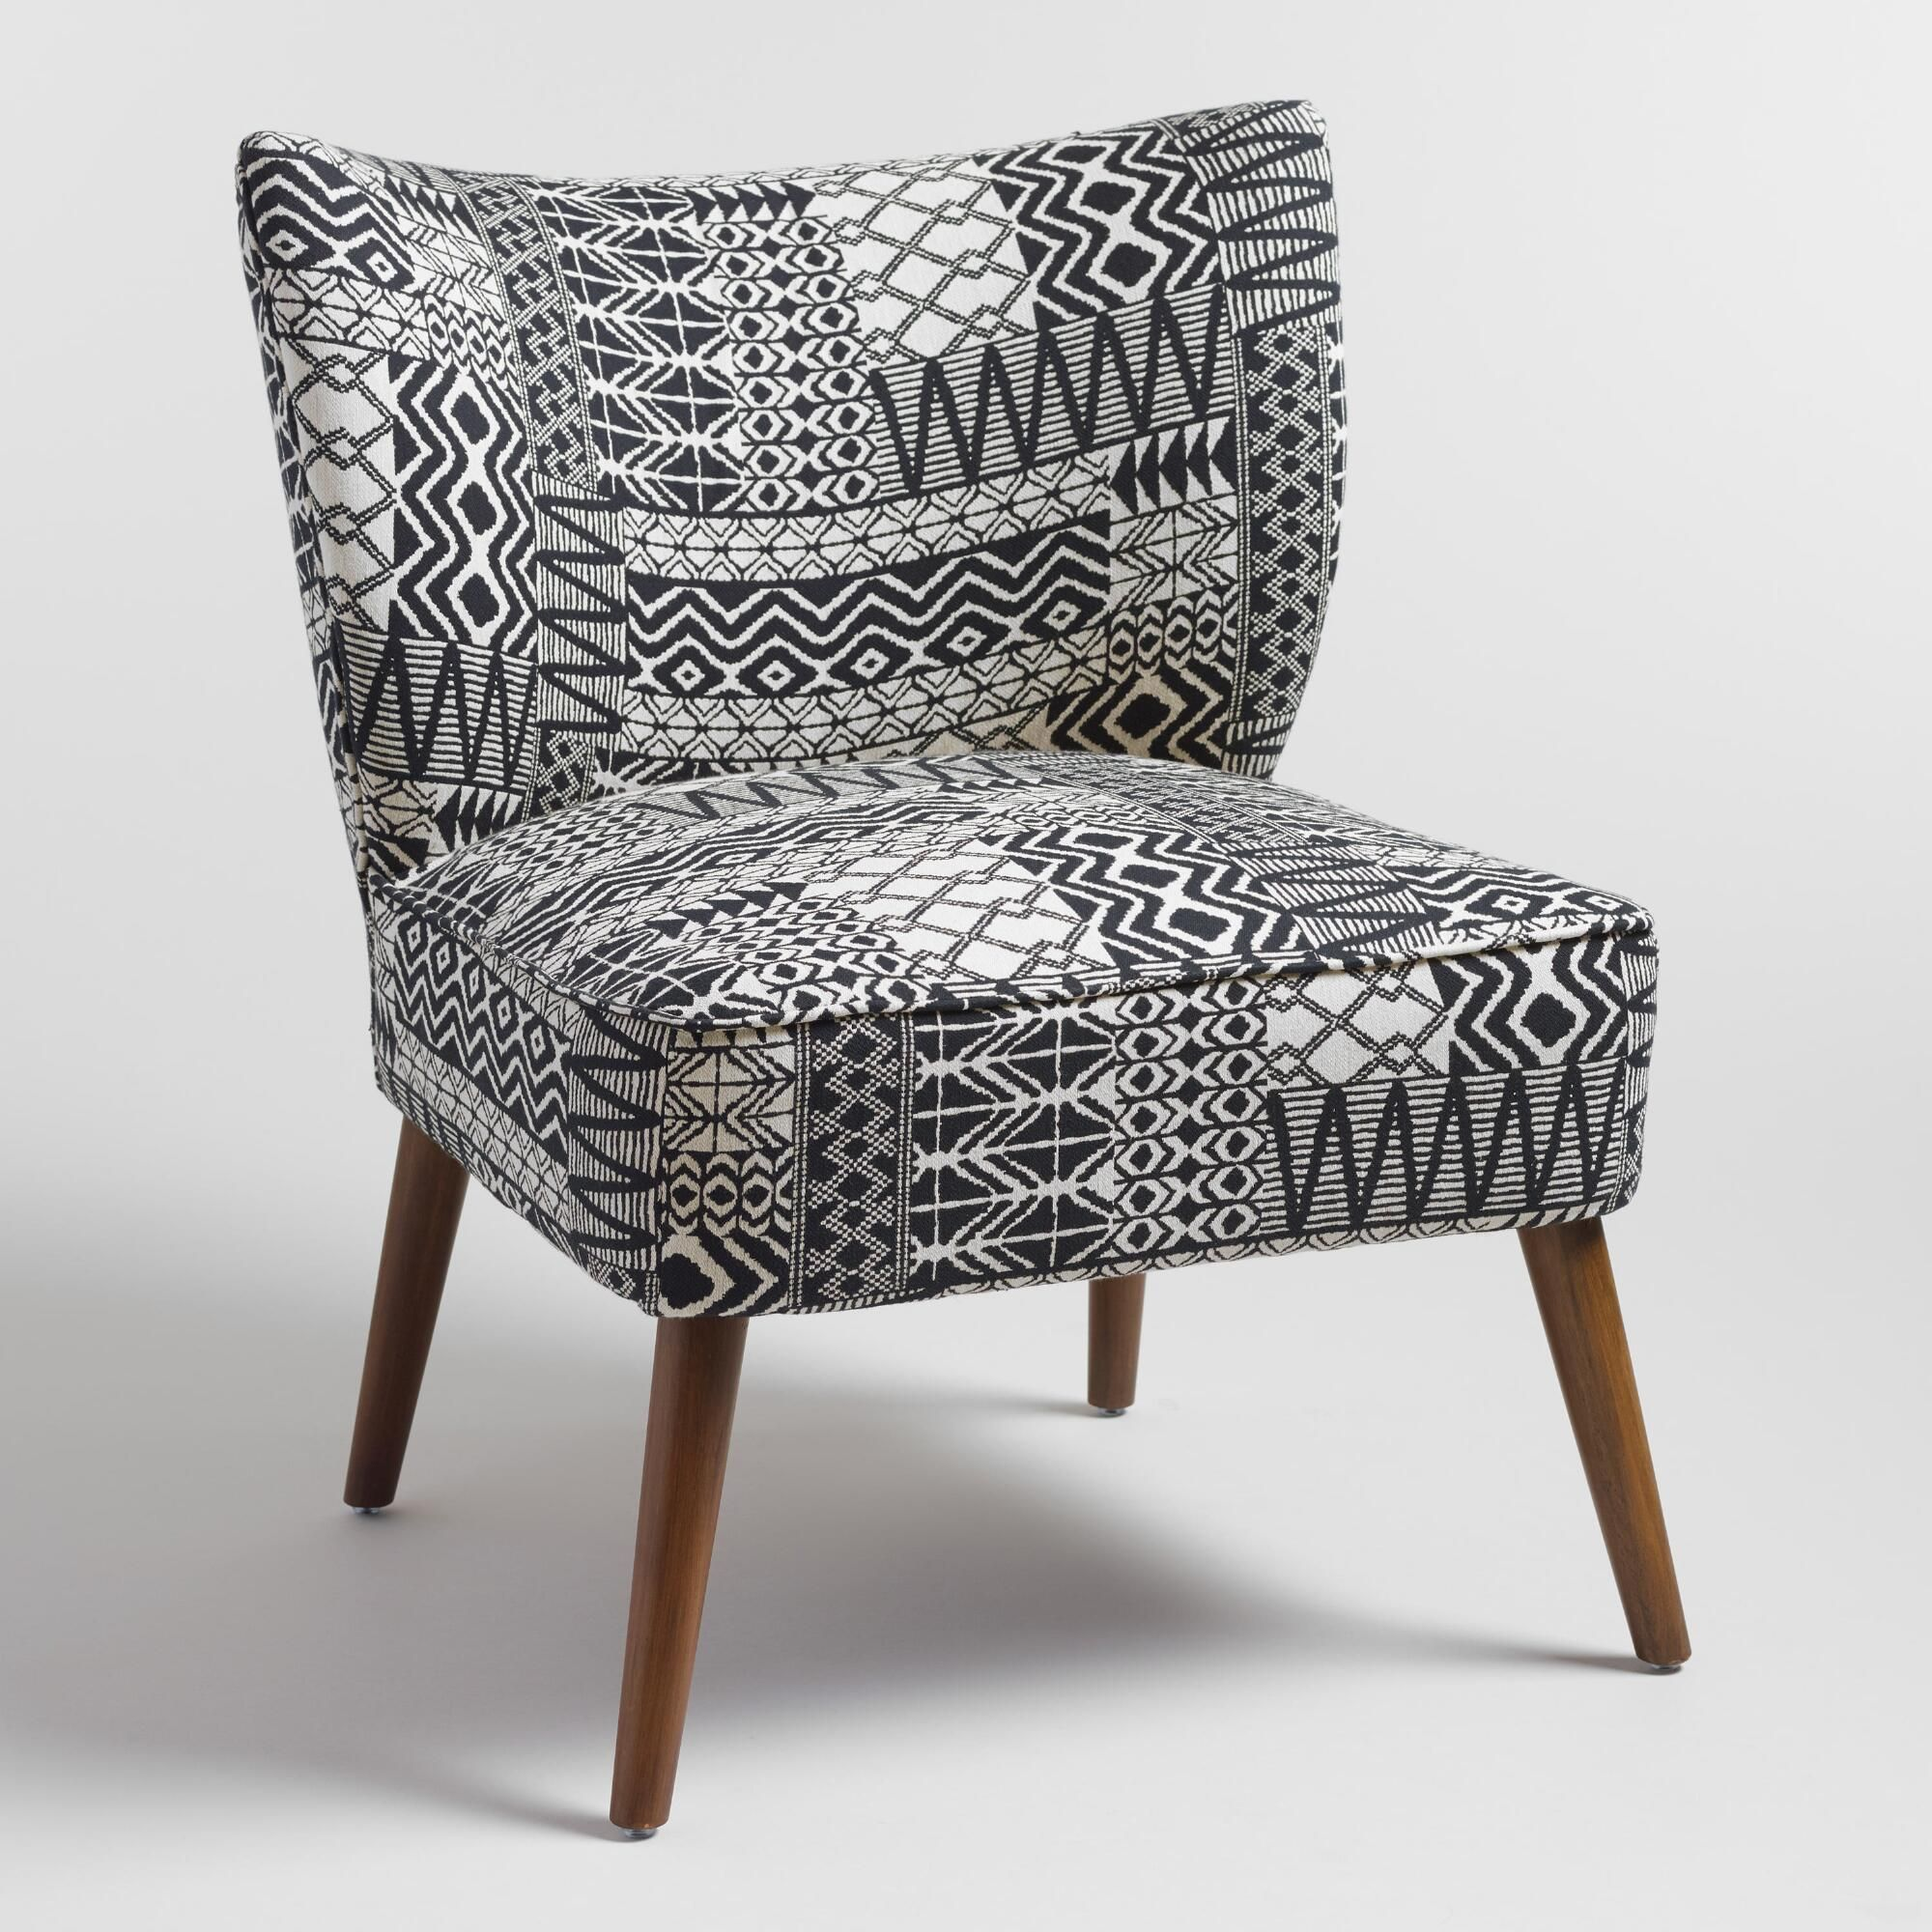 Charmant Our Plush Accent Chair Brings A Boho Vibe To Any Space With Black And White  Tribal Print Jacquard Upholstery And Splayed Wood Legs. Www.worldmarket.com  ...